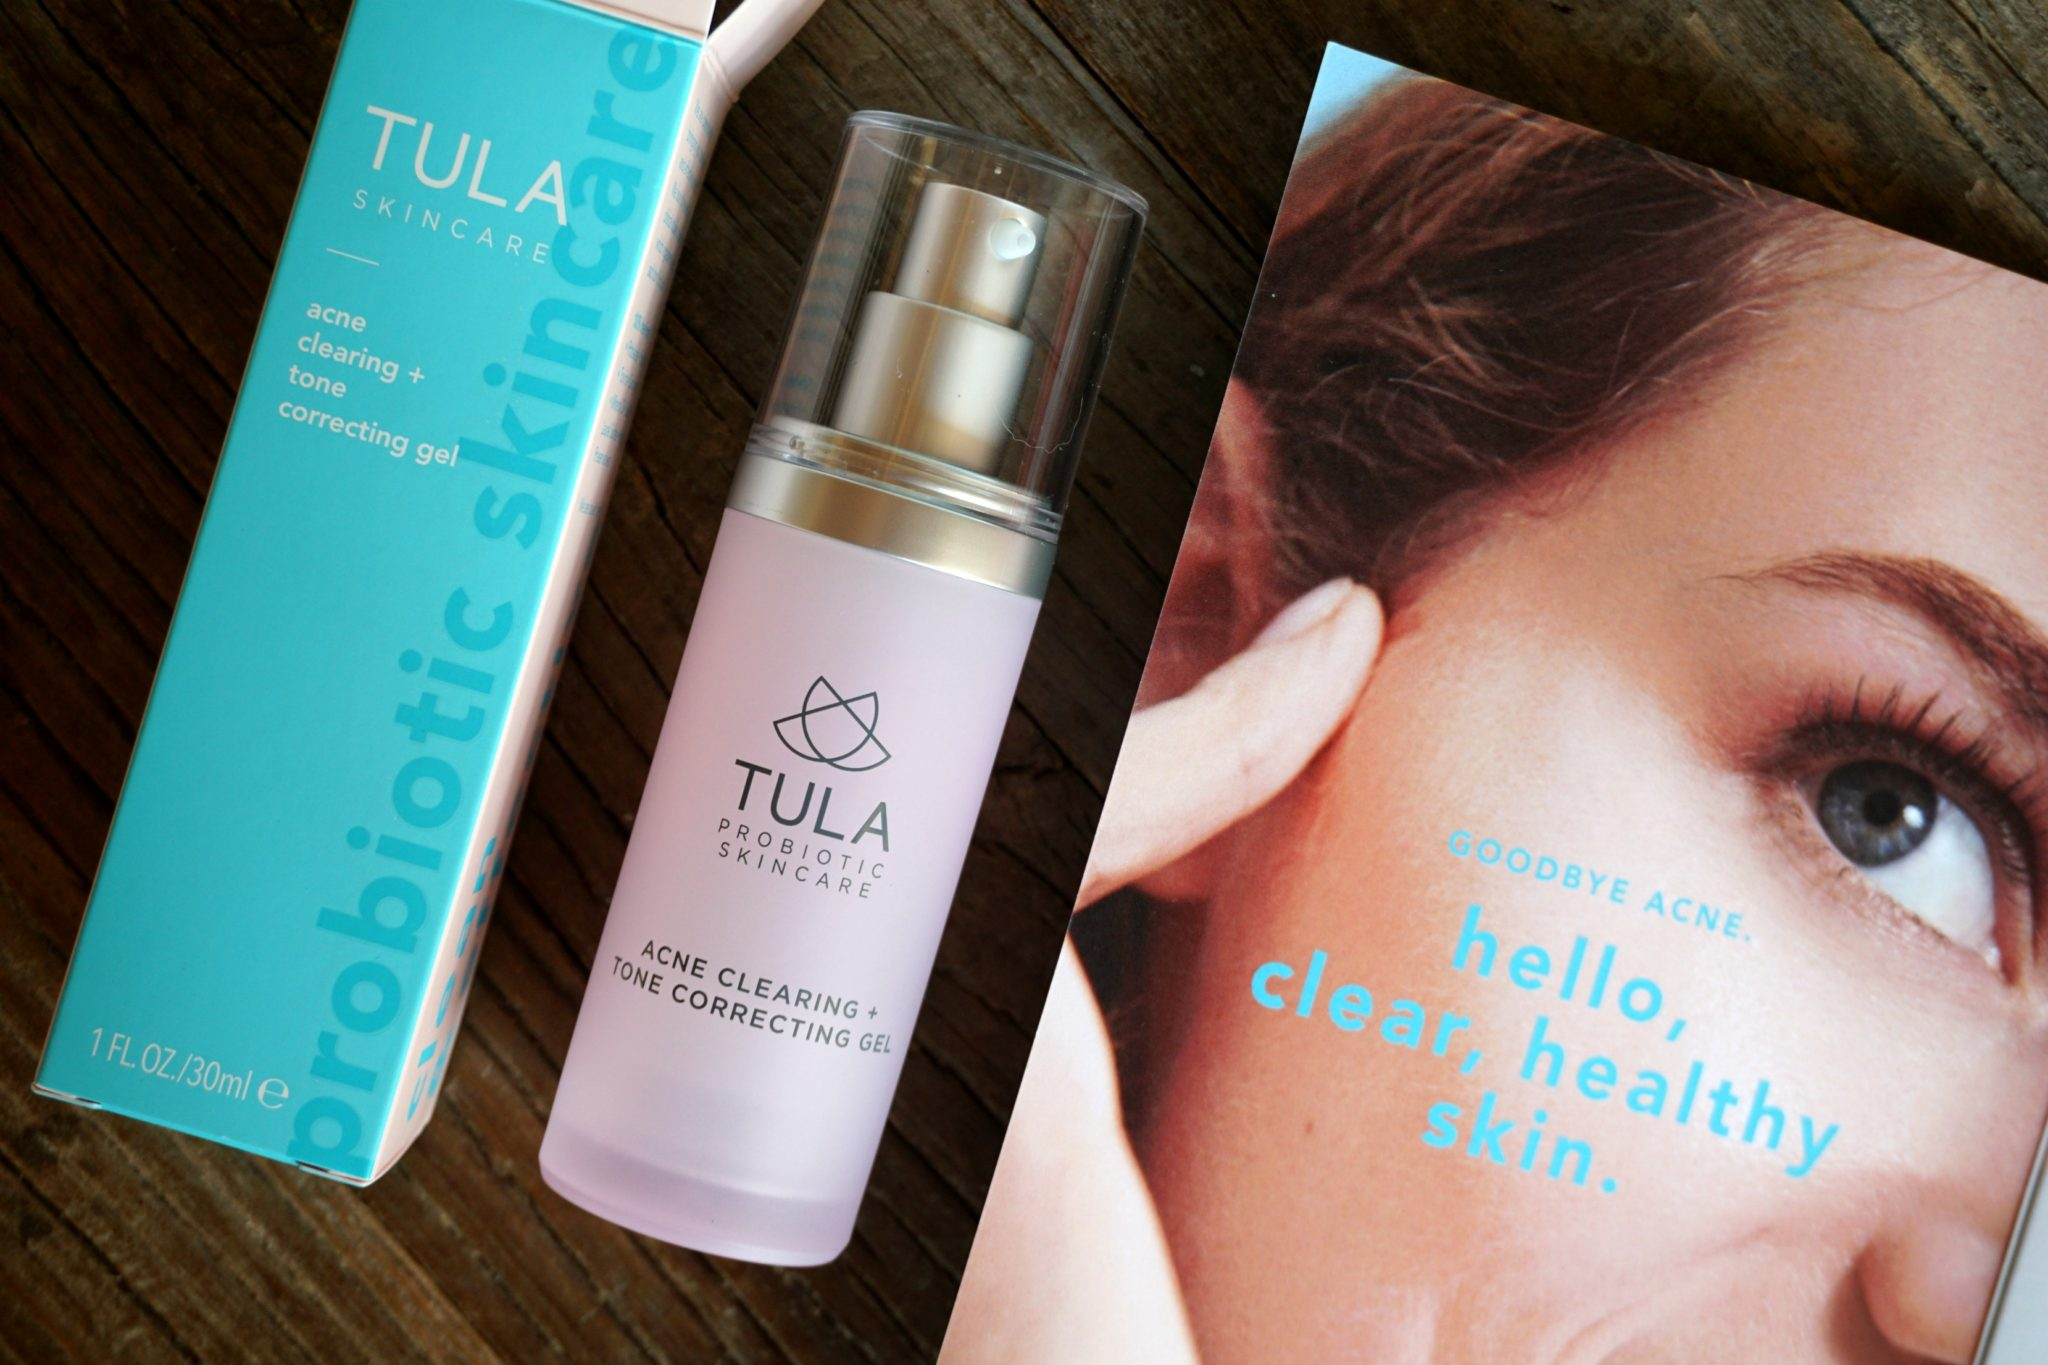 The new TULA Acne Clearing + Tone Correcting Gel & an